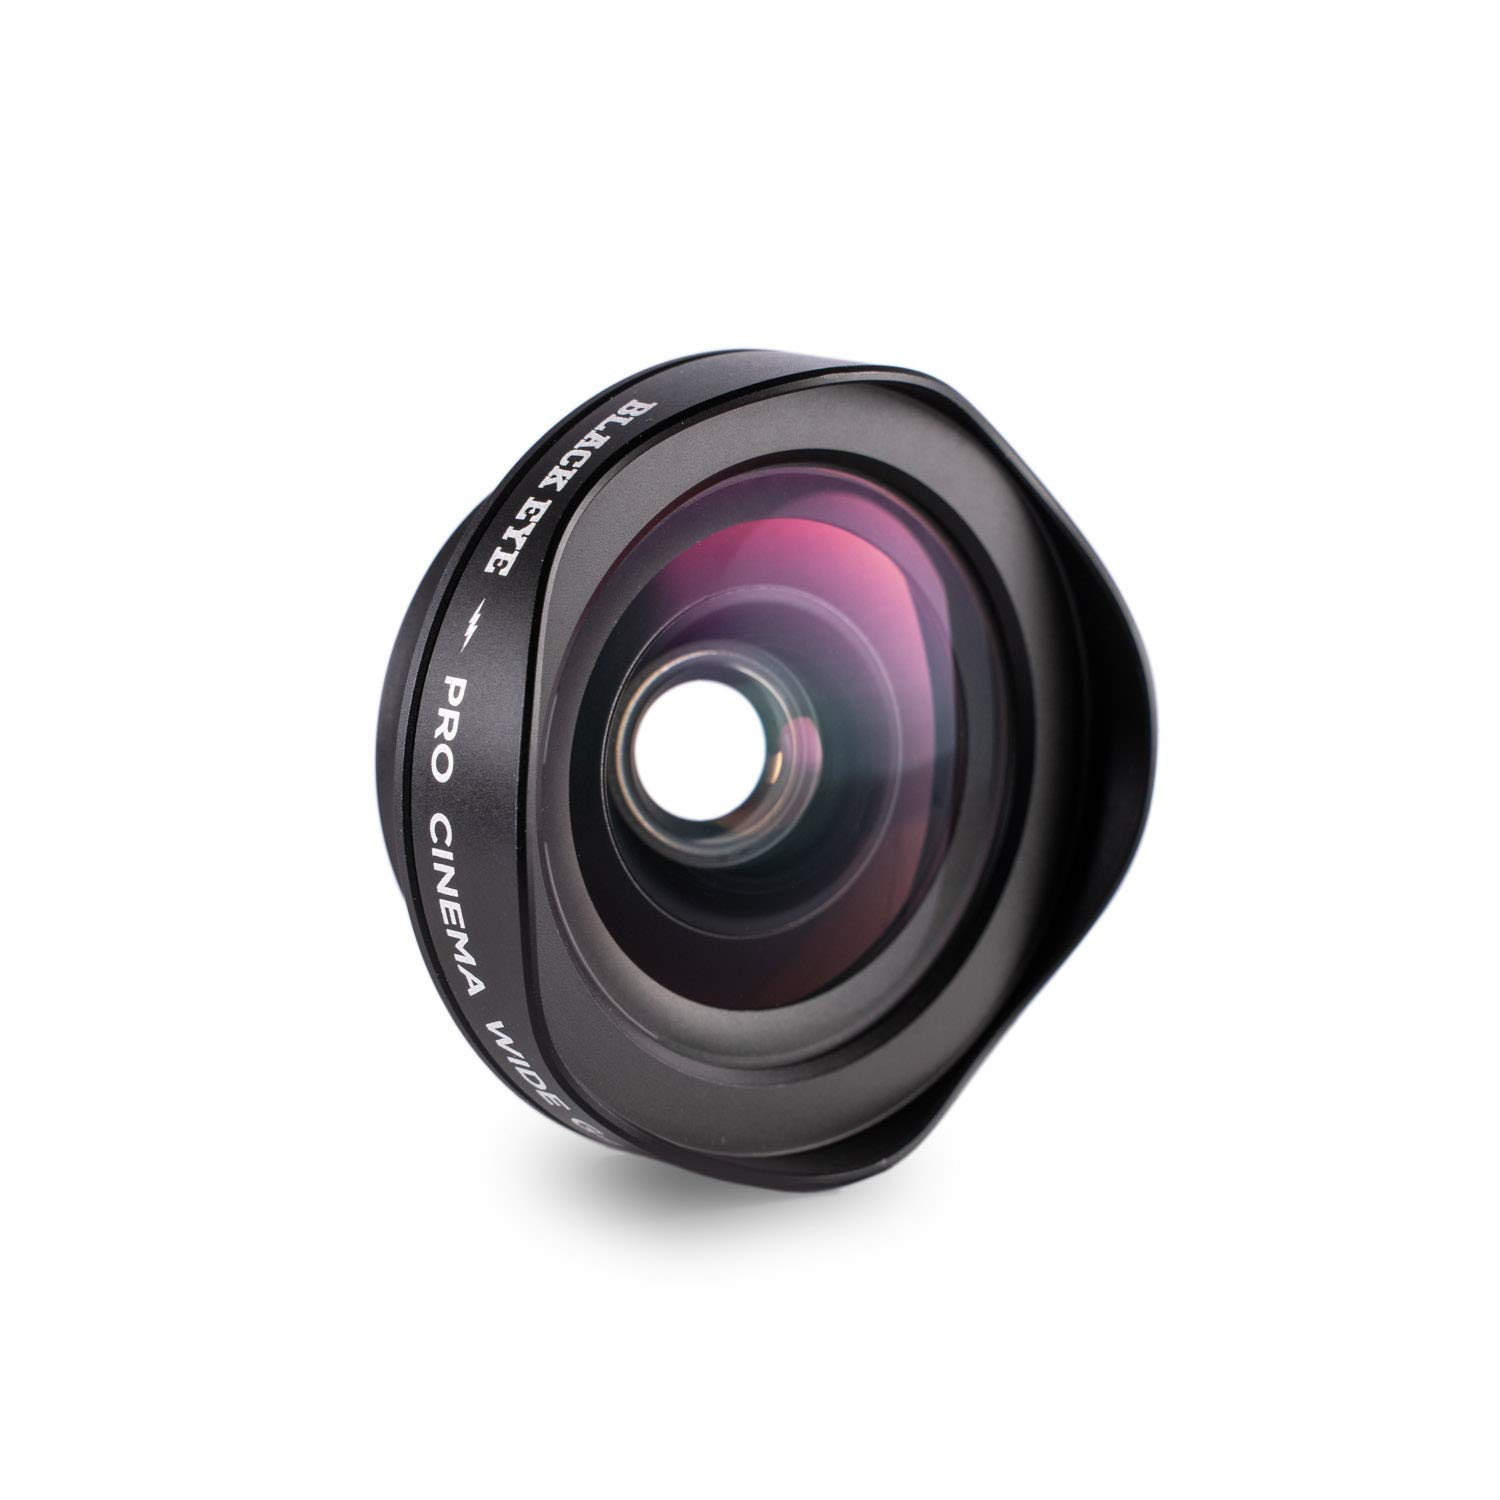 Phone Lenses by Black Eye || Pro Cinema Wide G4 Phone Camera Lens Compatible with iPhone, iPad, Samsung Galaxy, and All Camera Phone Models by BLACK EYE (Image #1)